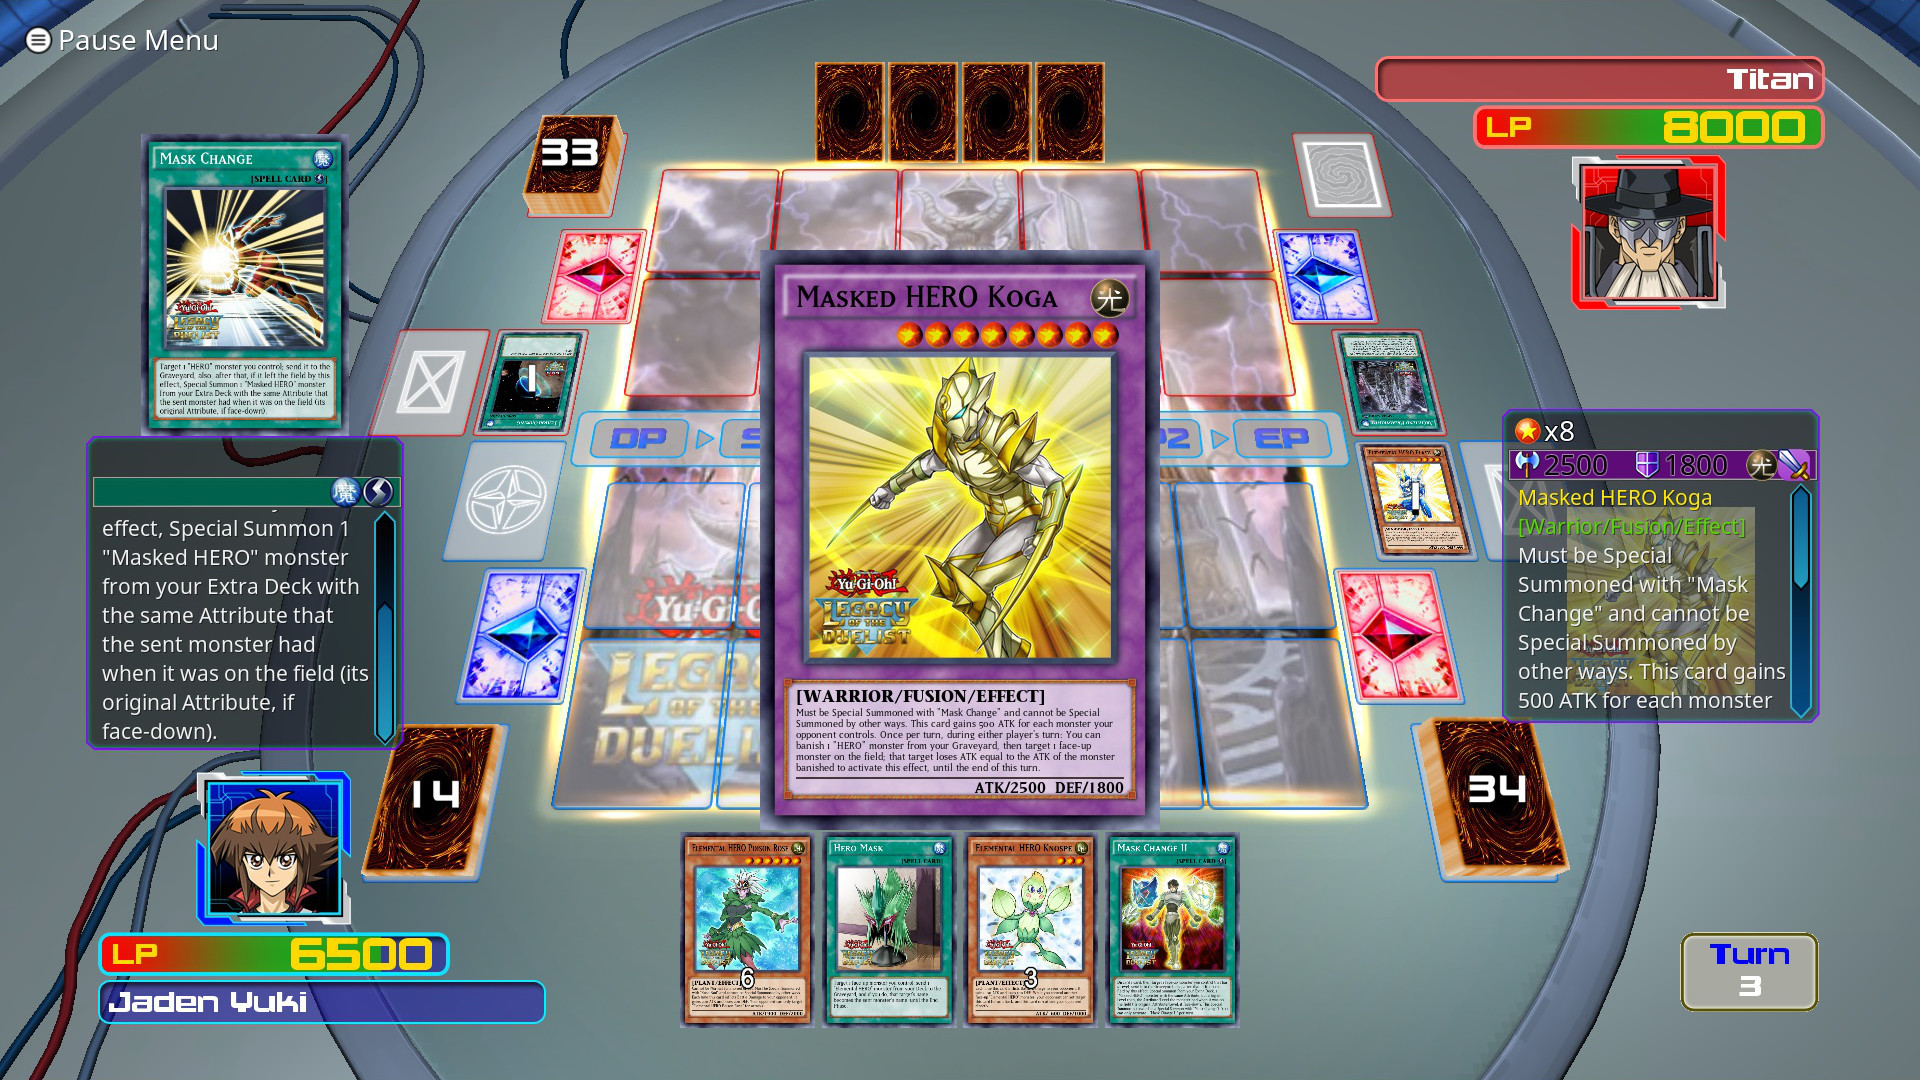 POWER CHAOS JOEY TÉLÉCHARGER THE PASSION OF GRATUITEMENT YU-GI-OH